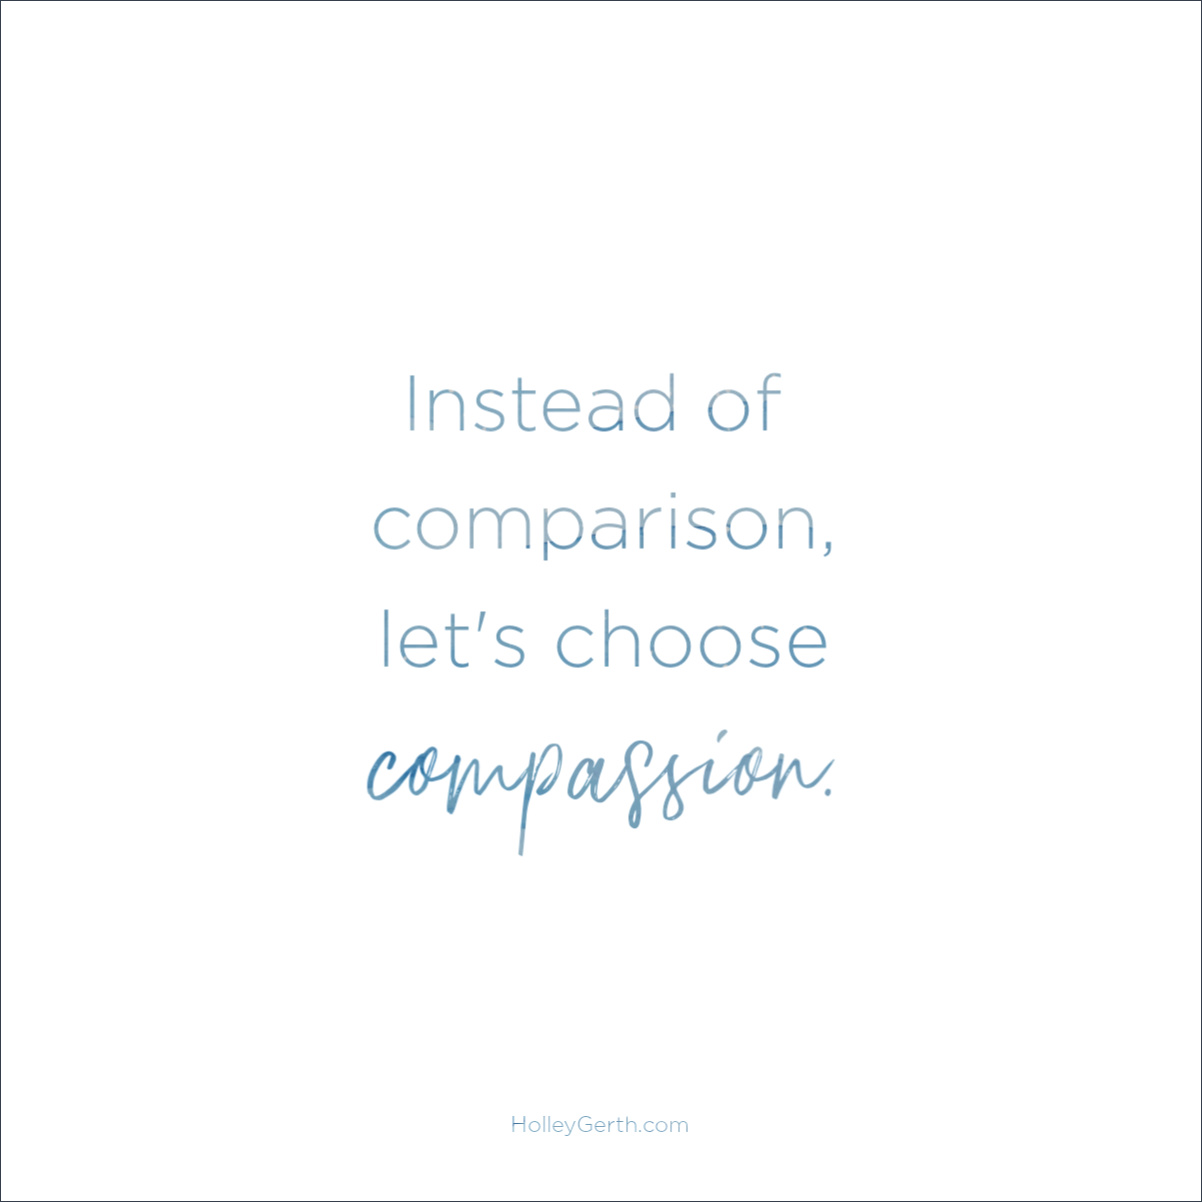 Instead of comparison, let's choose compassion.